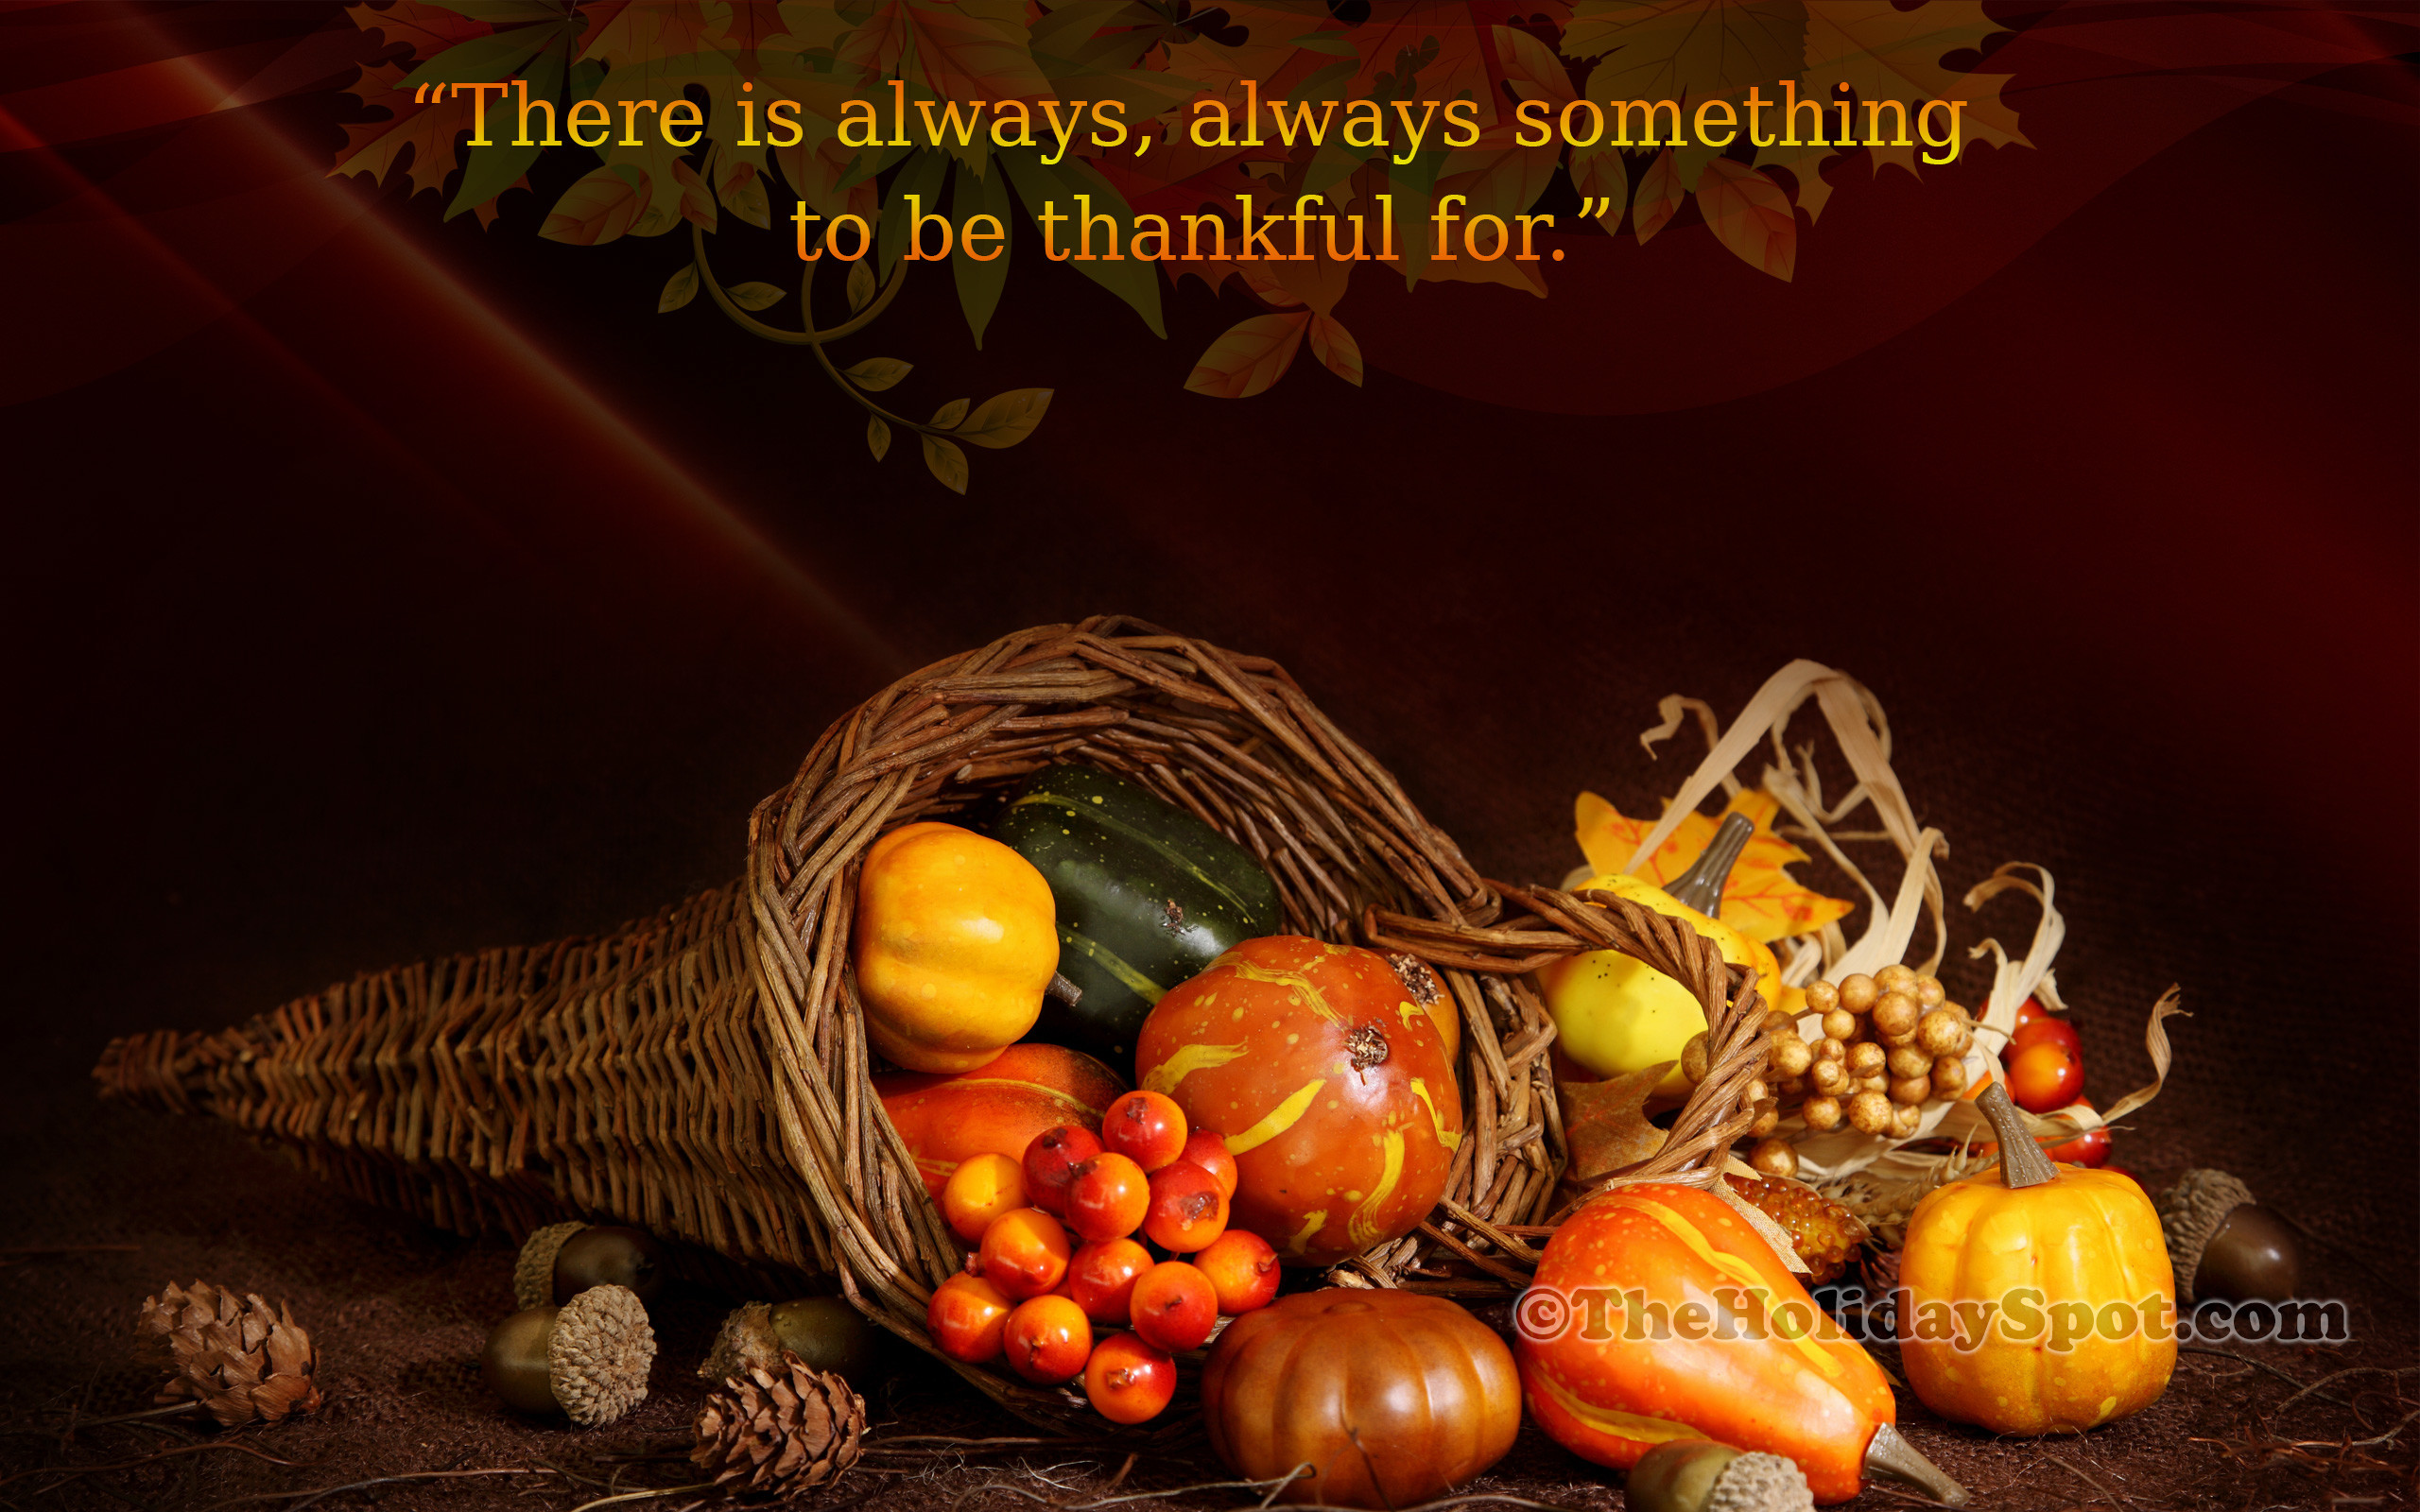 2560x1600,   Data Id 177279   Data Src /walls/full/5/0/6/177279 - Happy Thanksgiving Images In Chinese - HD Wallpaper